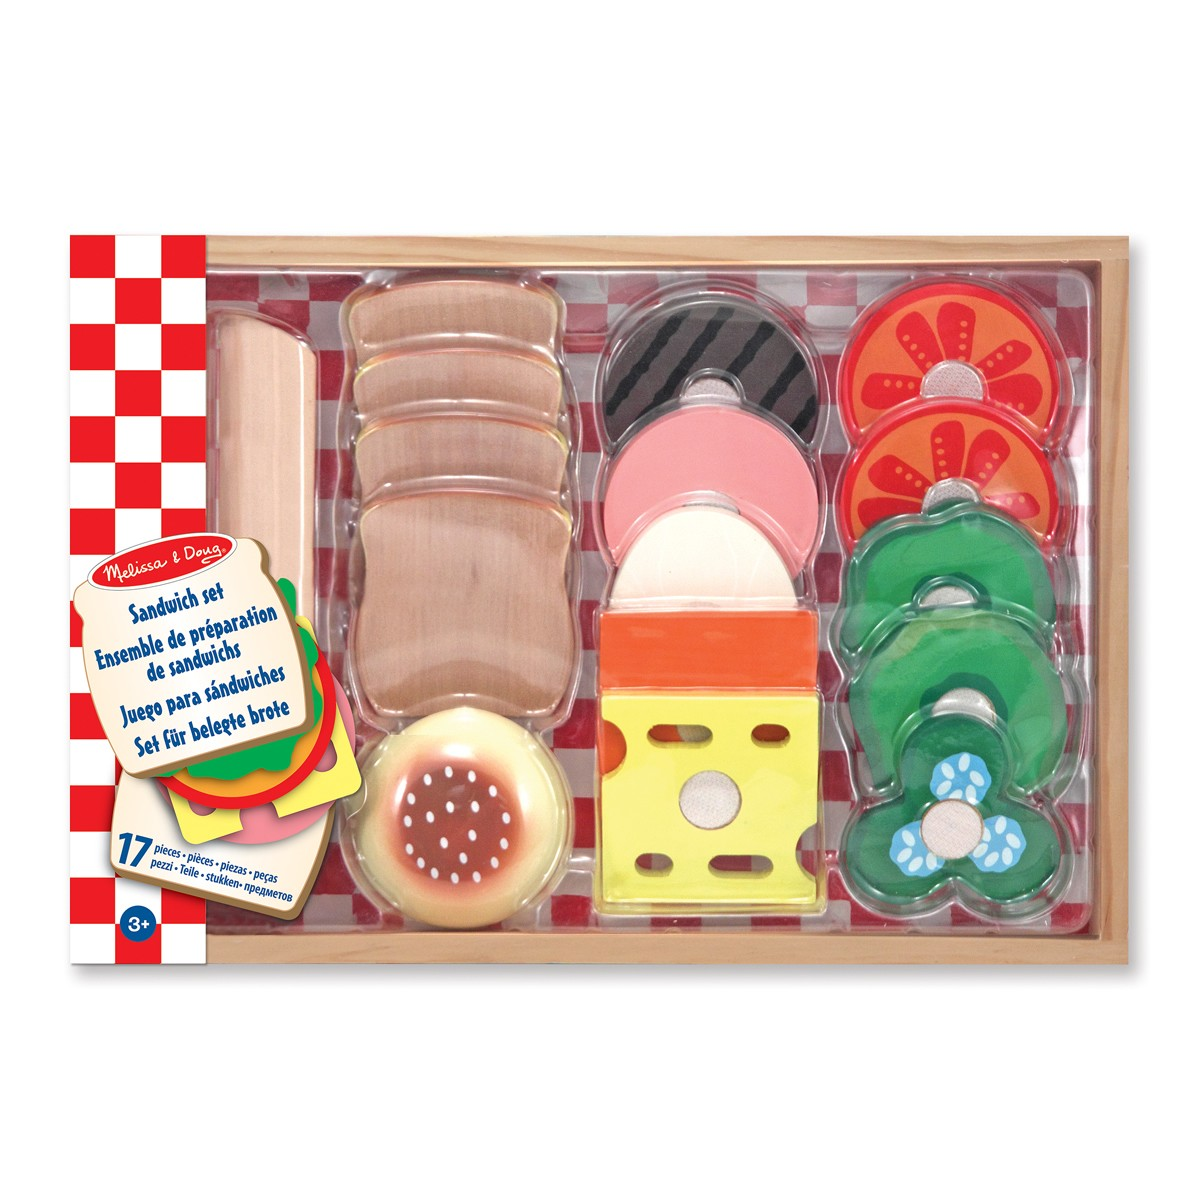 Melissa & Doug Wooden Sandwich Making Set